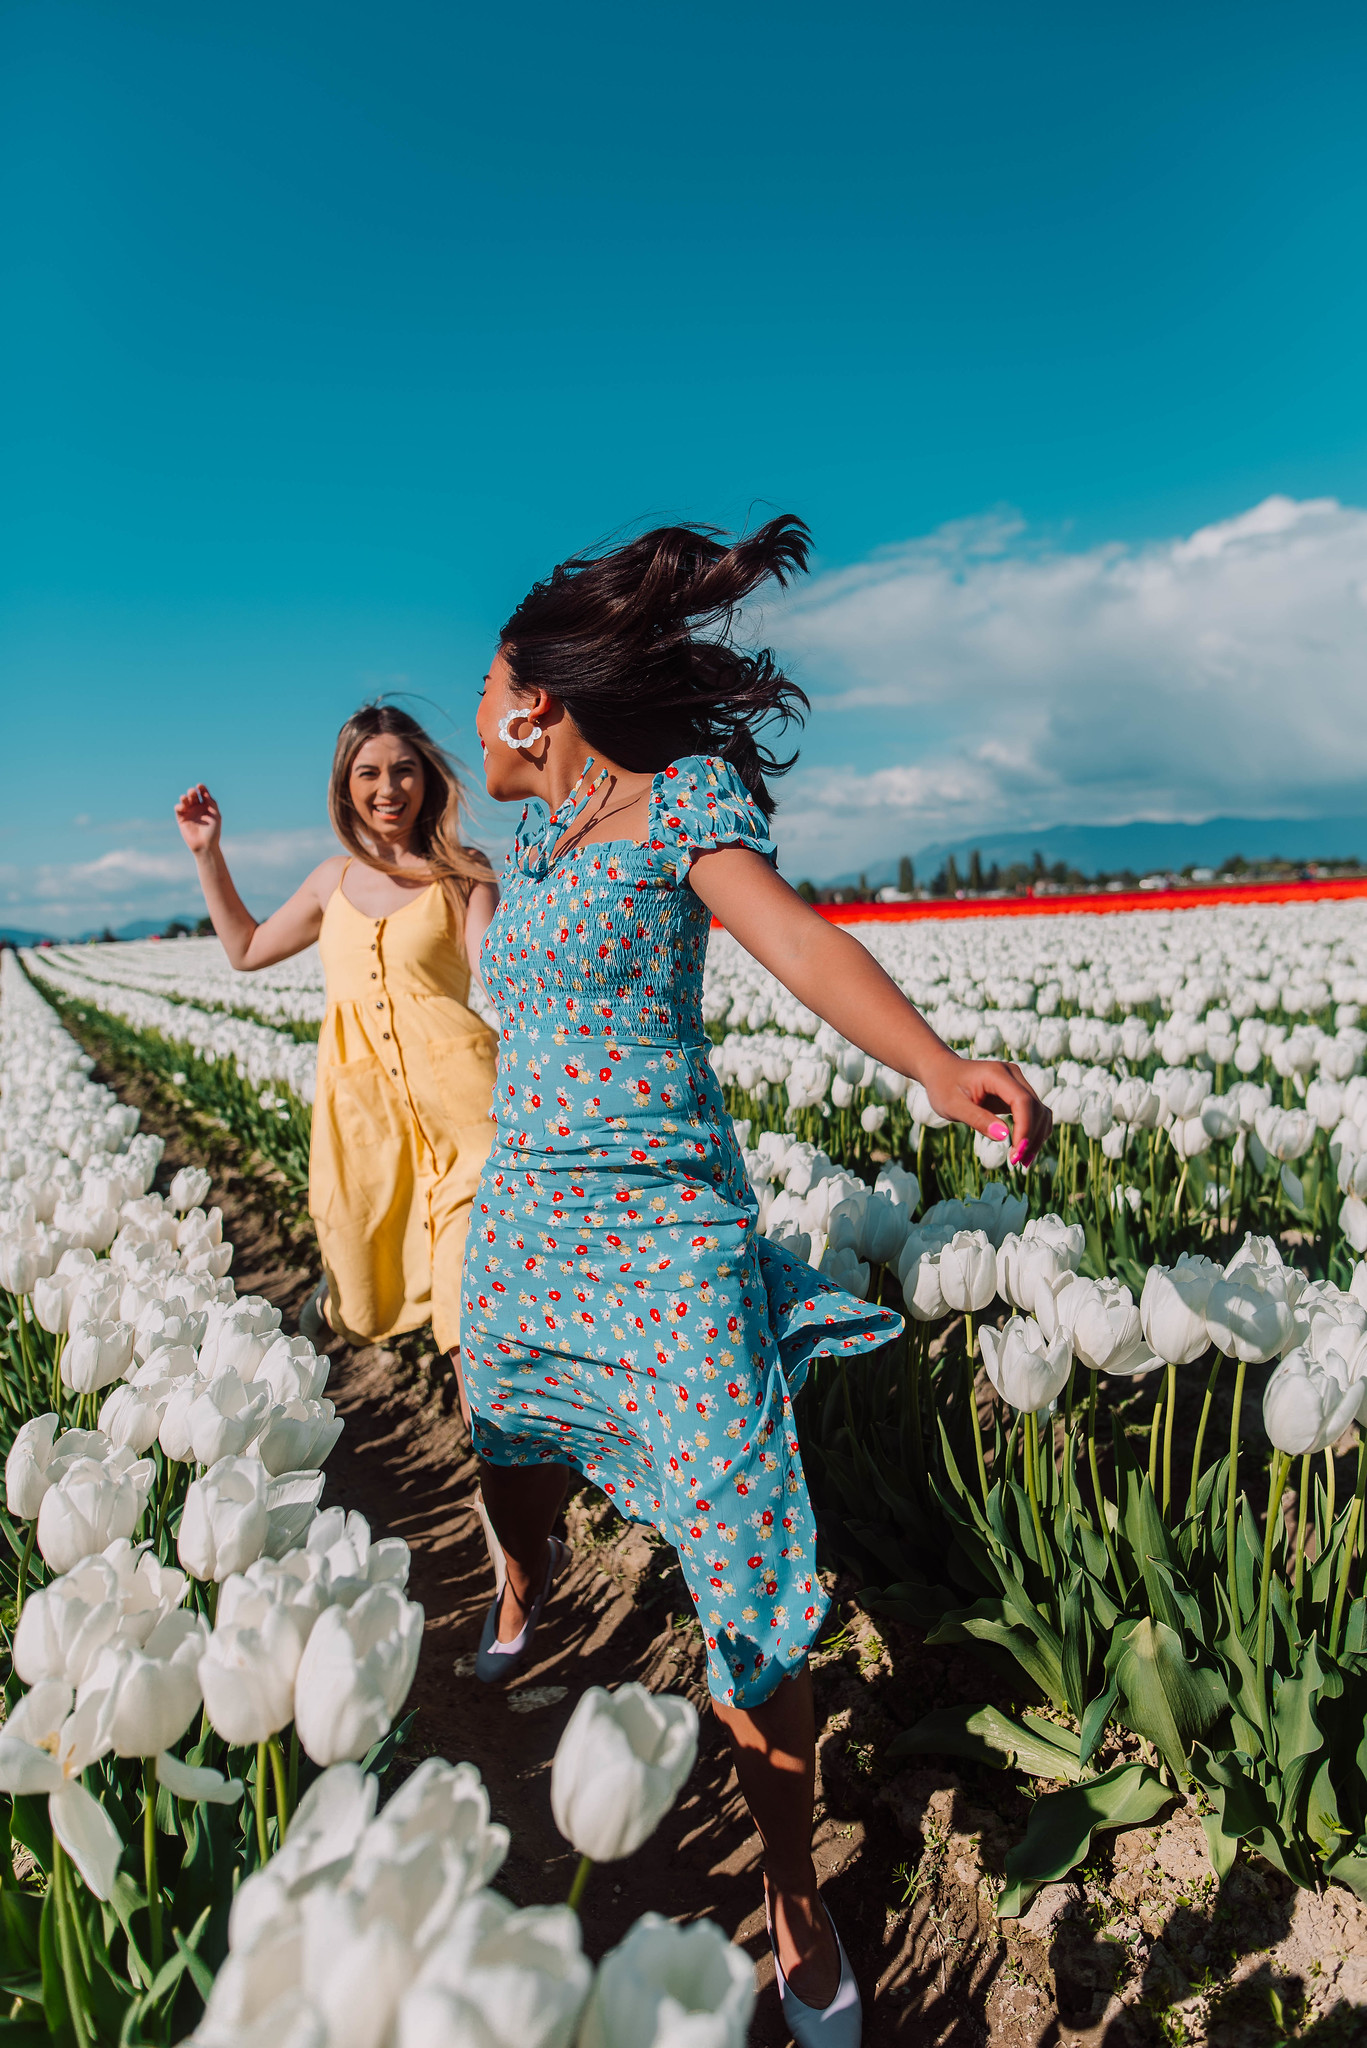 flower field photo shoot ideas - skipping through the tulip fiekd